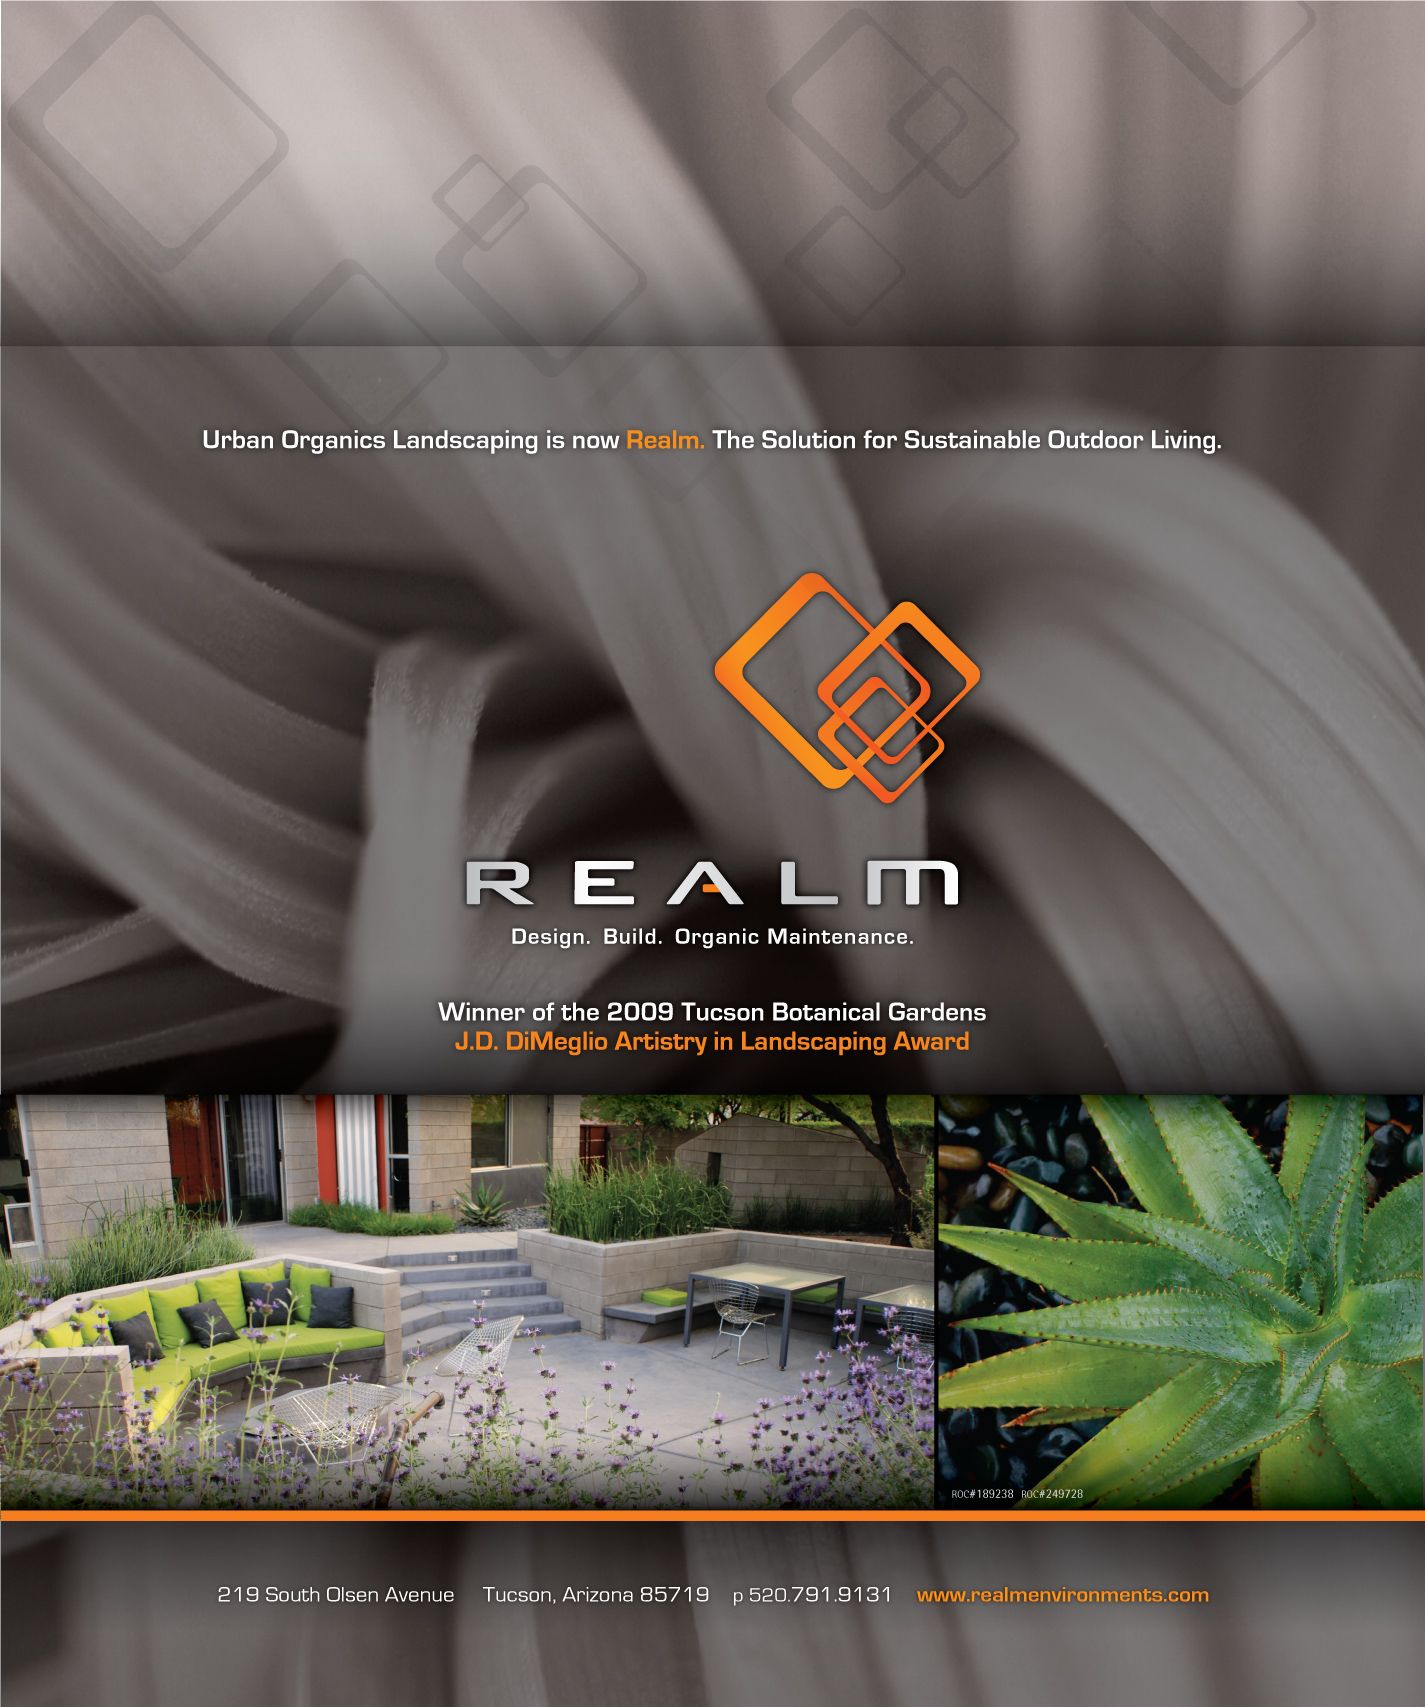 Urban Organics Landscaping is now REALM